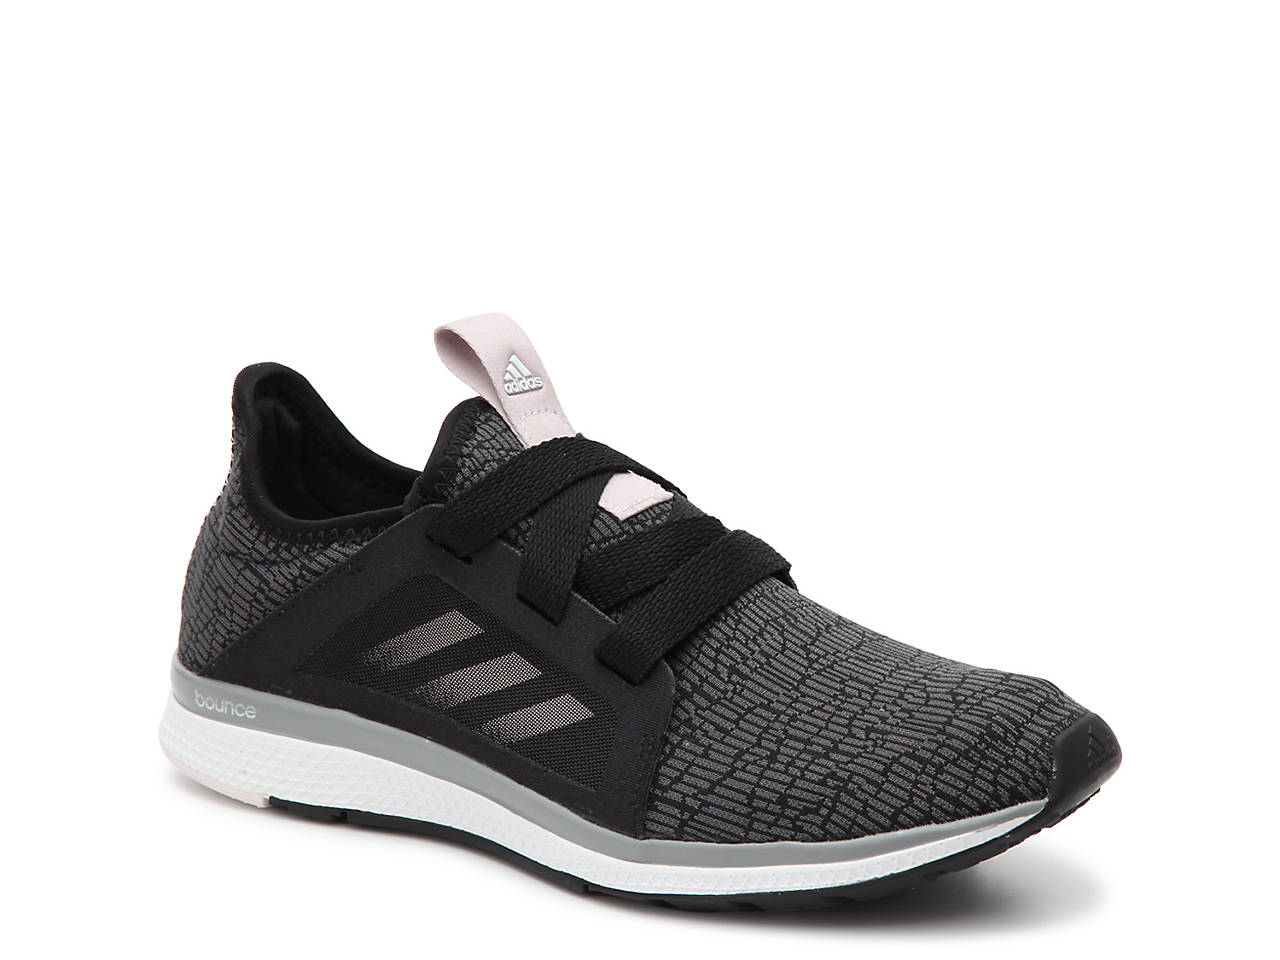 7d83e56d0643b adidas Edge Lux Lightweight Running Shoe - Women s Women s Shoes